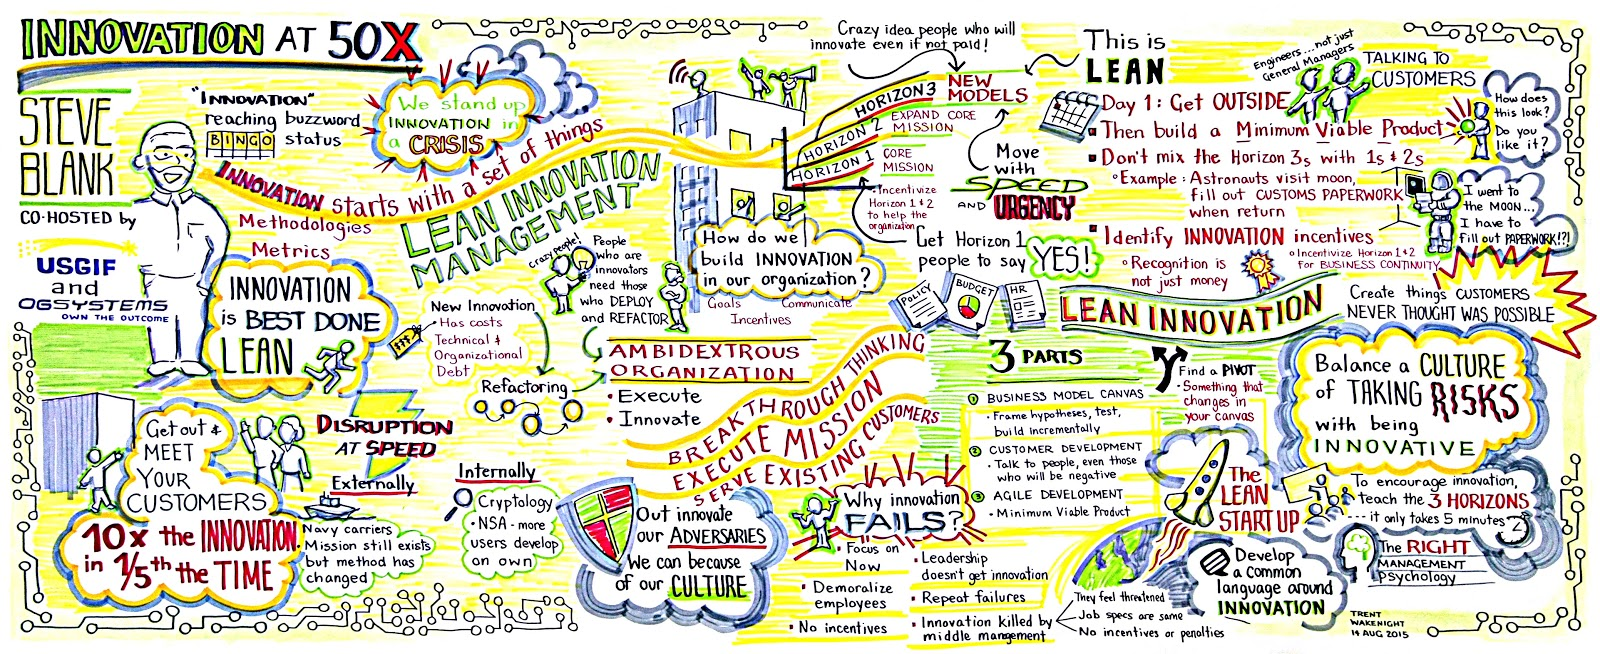 graphic-recording-steveblank-innovation-at-50x-trent-wakenight-ogsystems-20150814.jpg